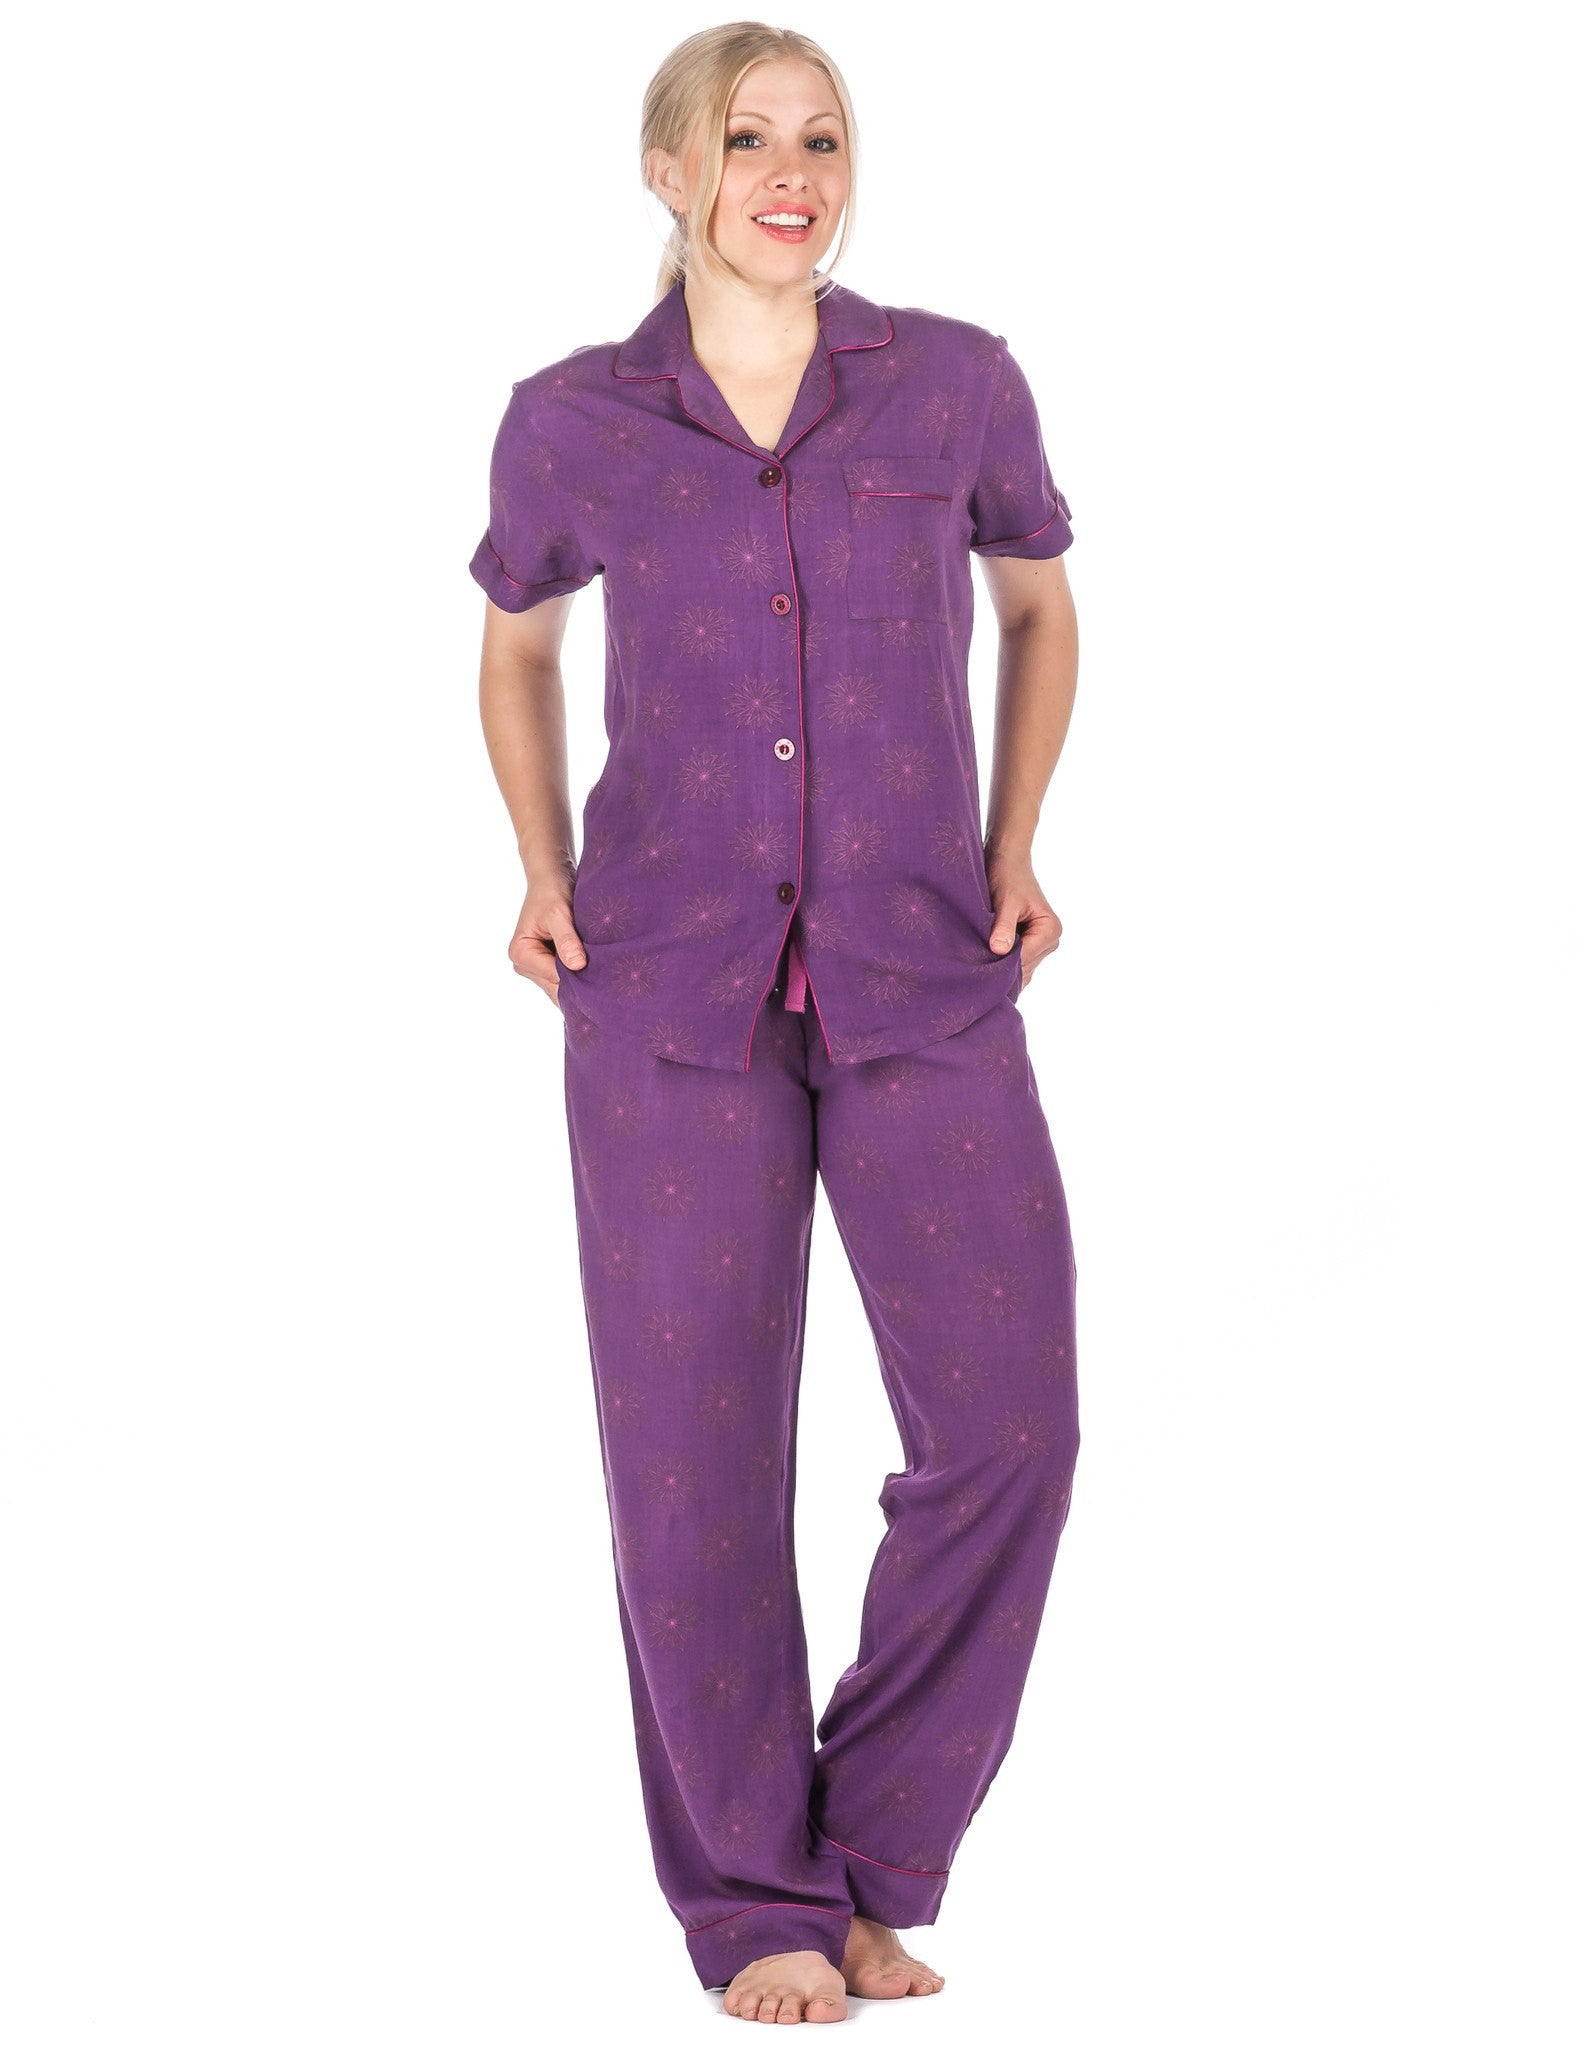 Women's Cool Breeze Woven Short Sleeve Pajama Set